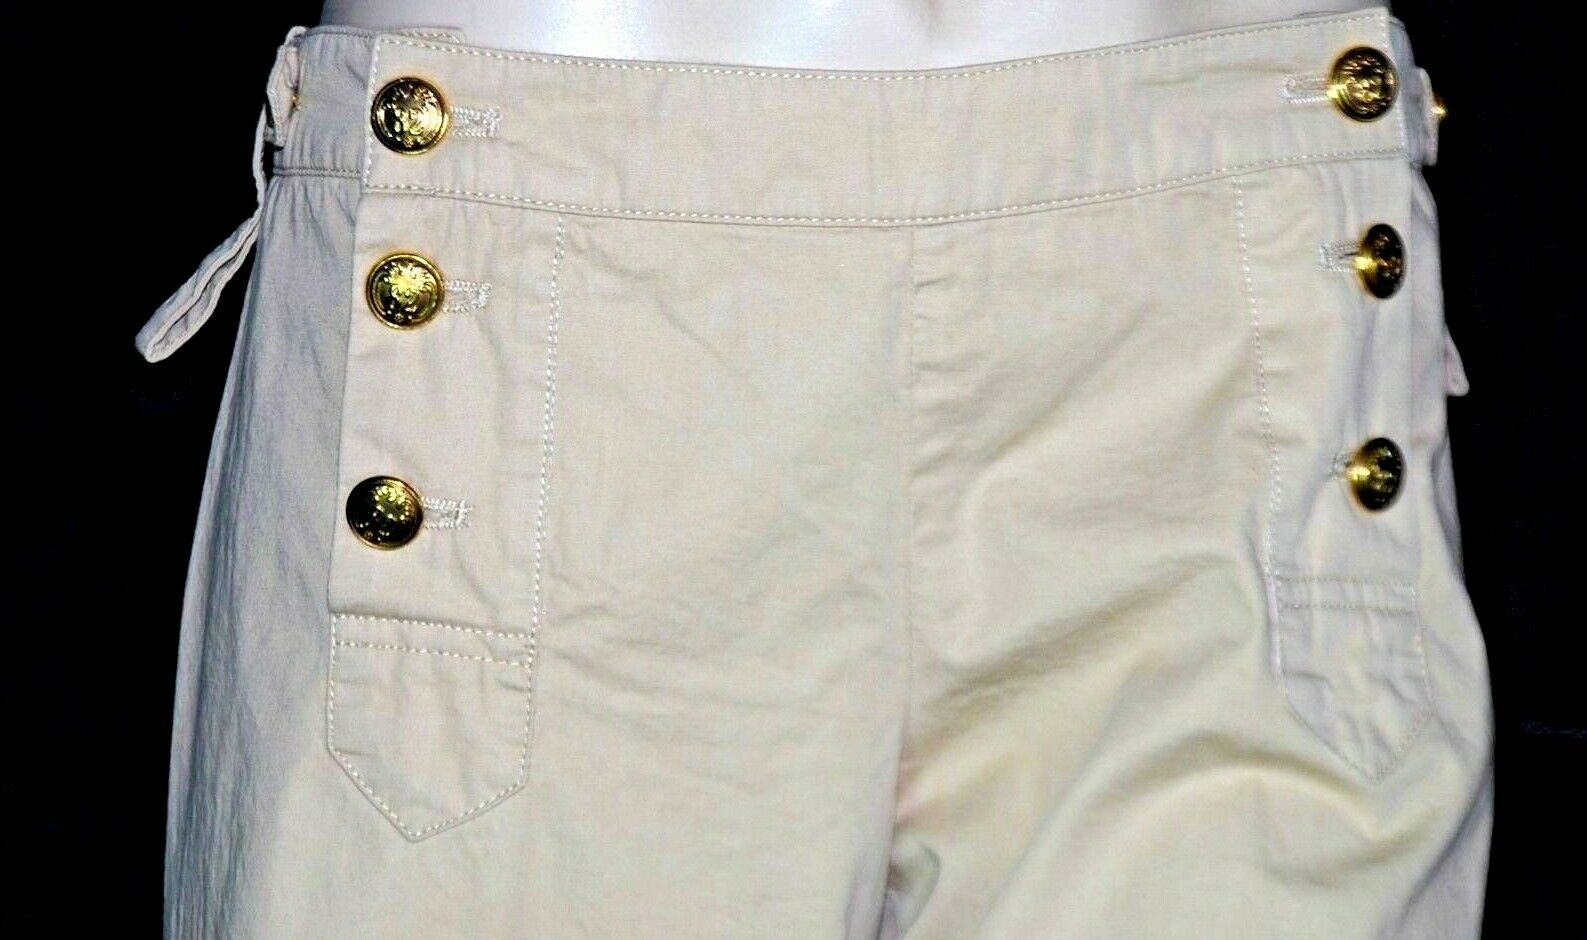 COAST WEBER DESIGNER Hose trousers Shorts Bermudas 36 38 S neu  NEW tags